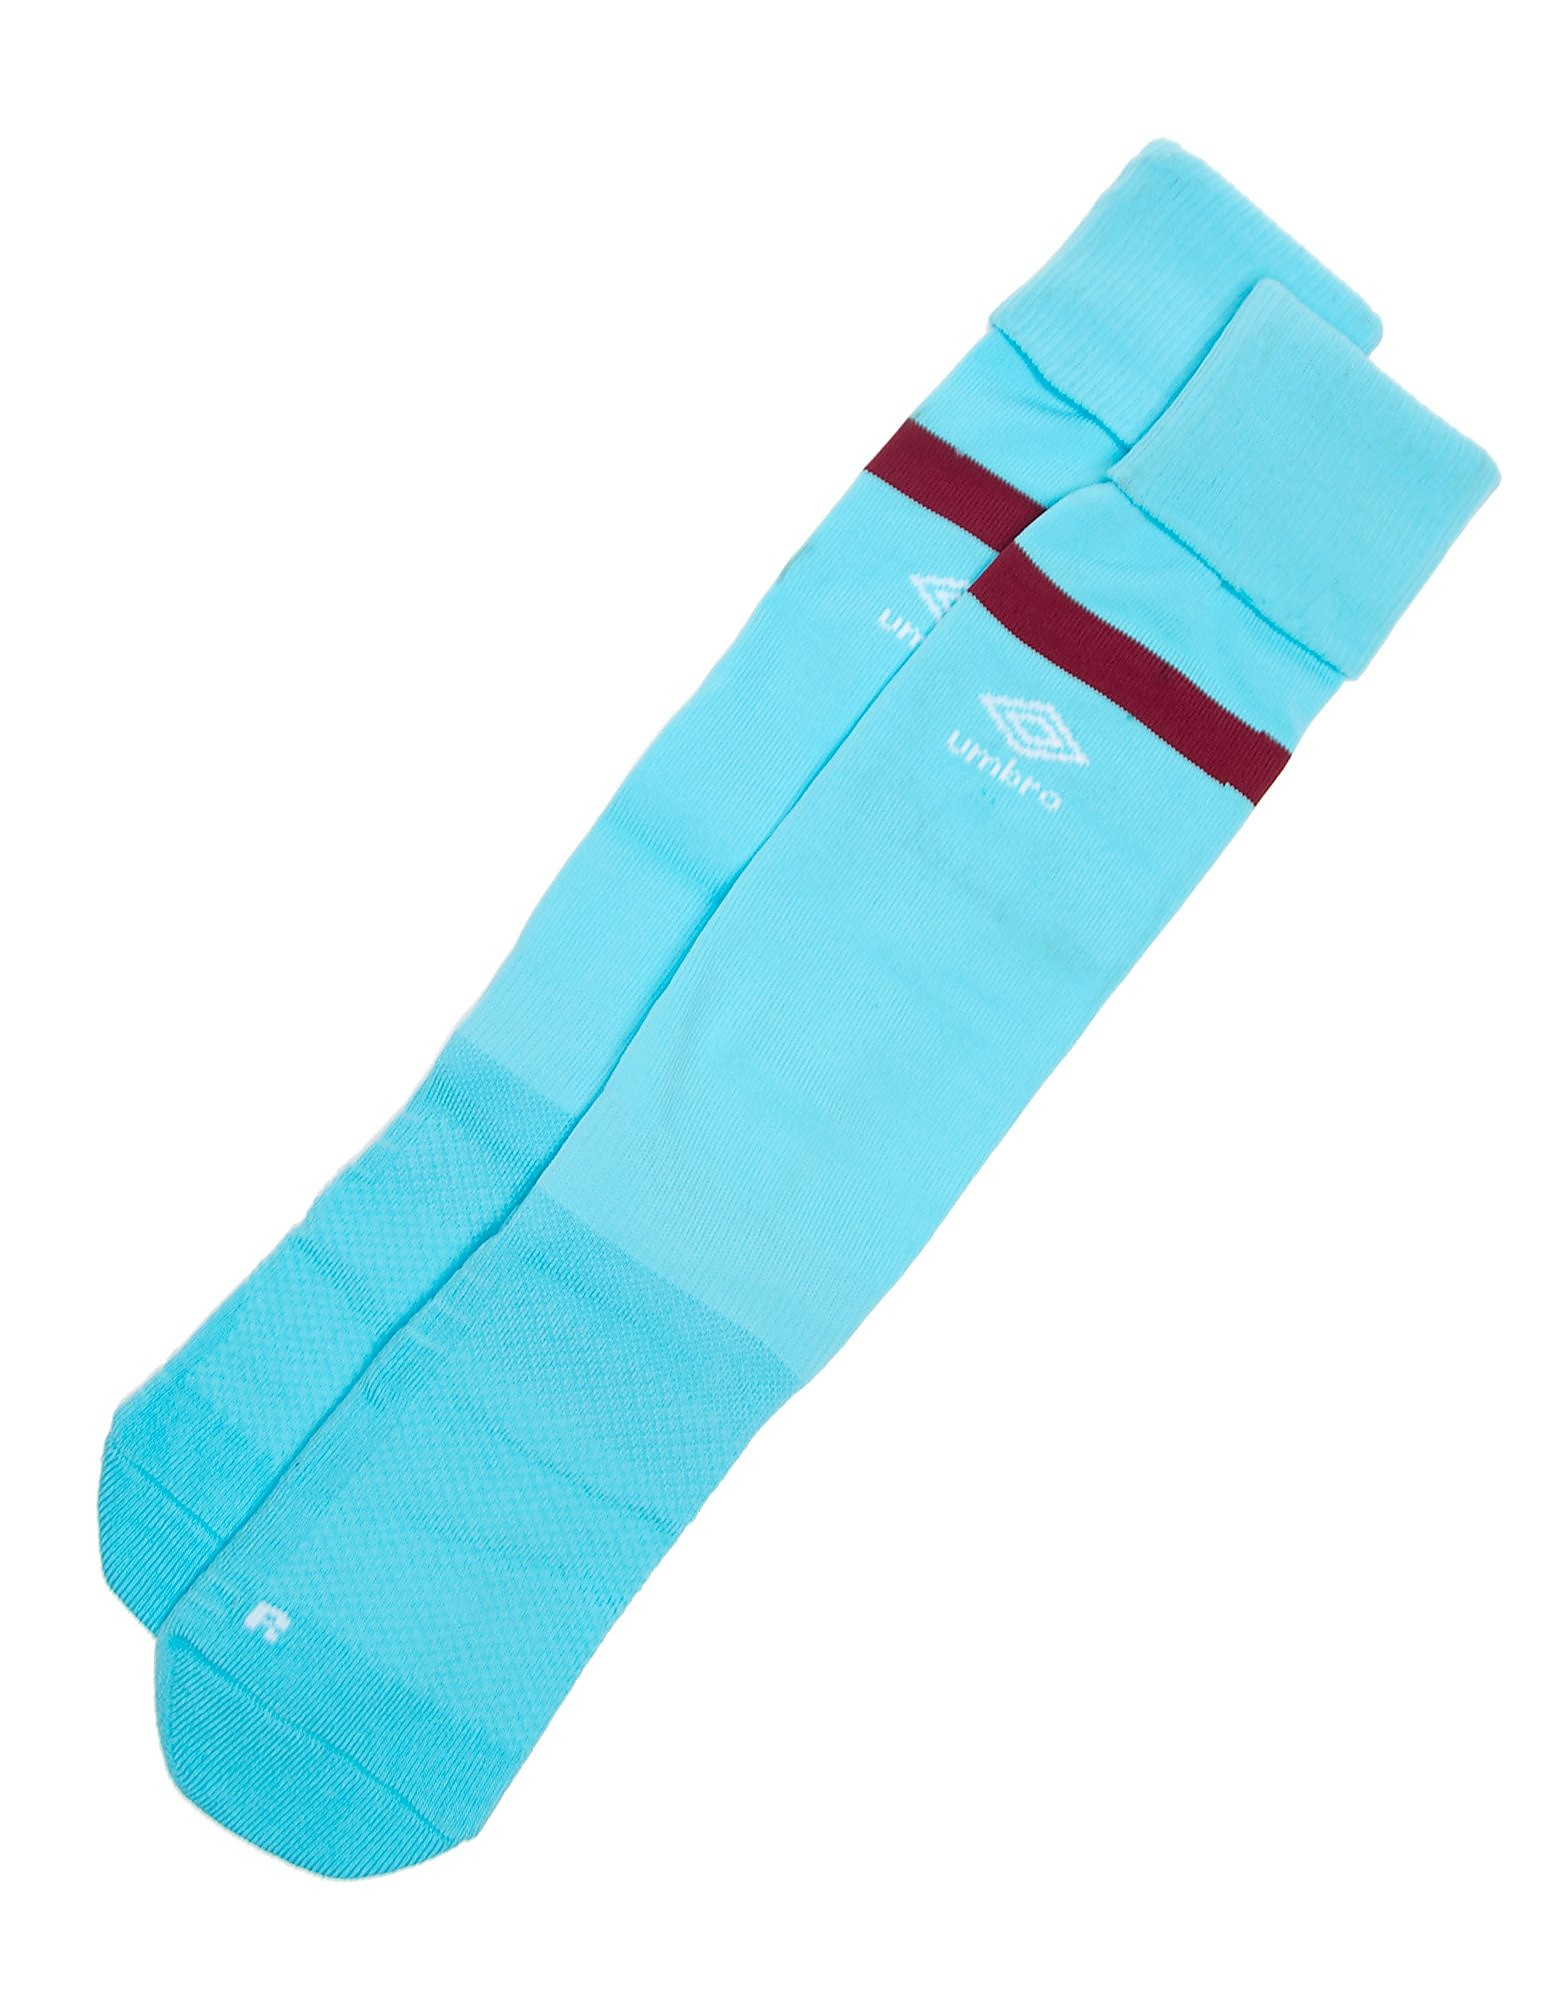 Umbro West Ham United 2015 Away Socks Junior